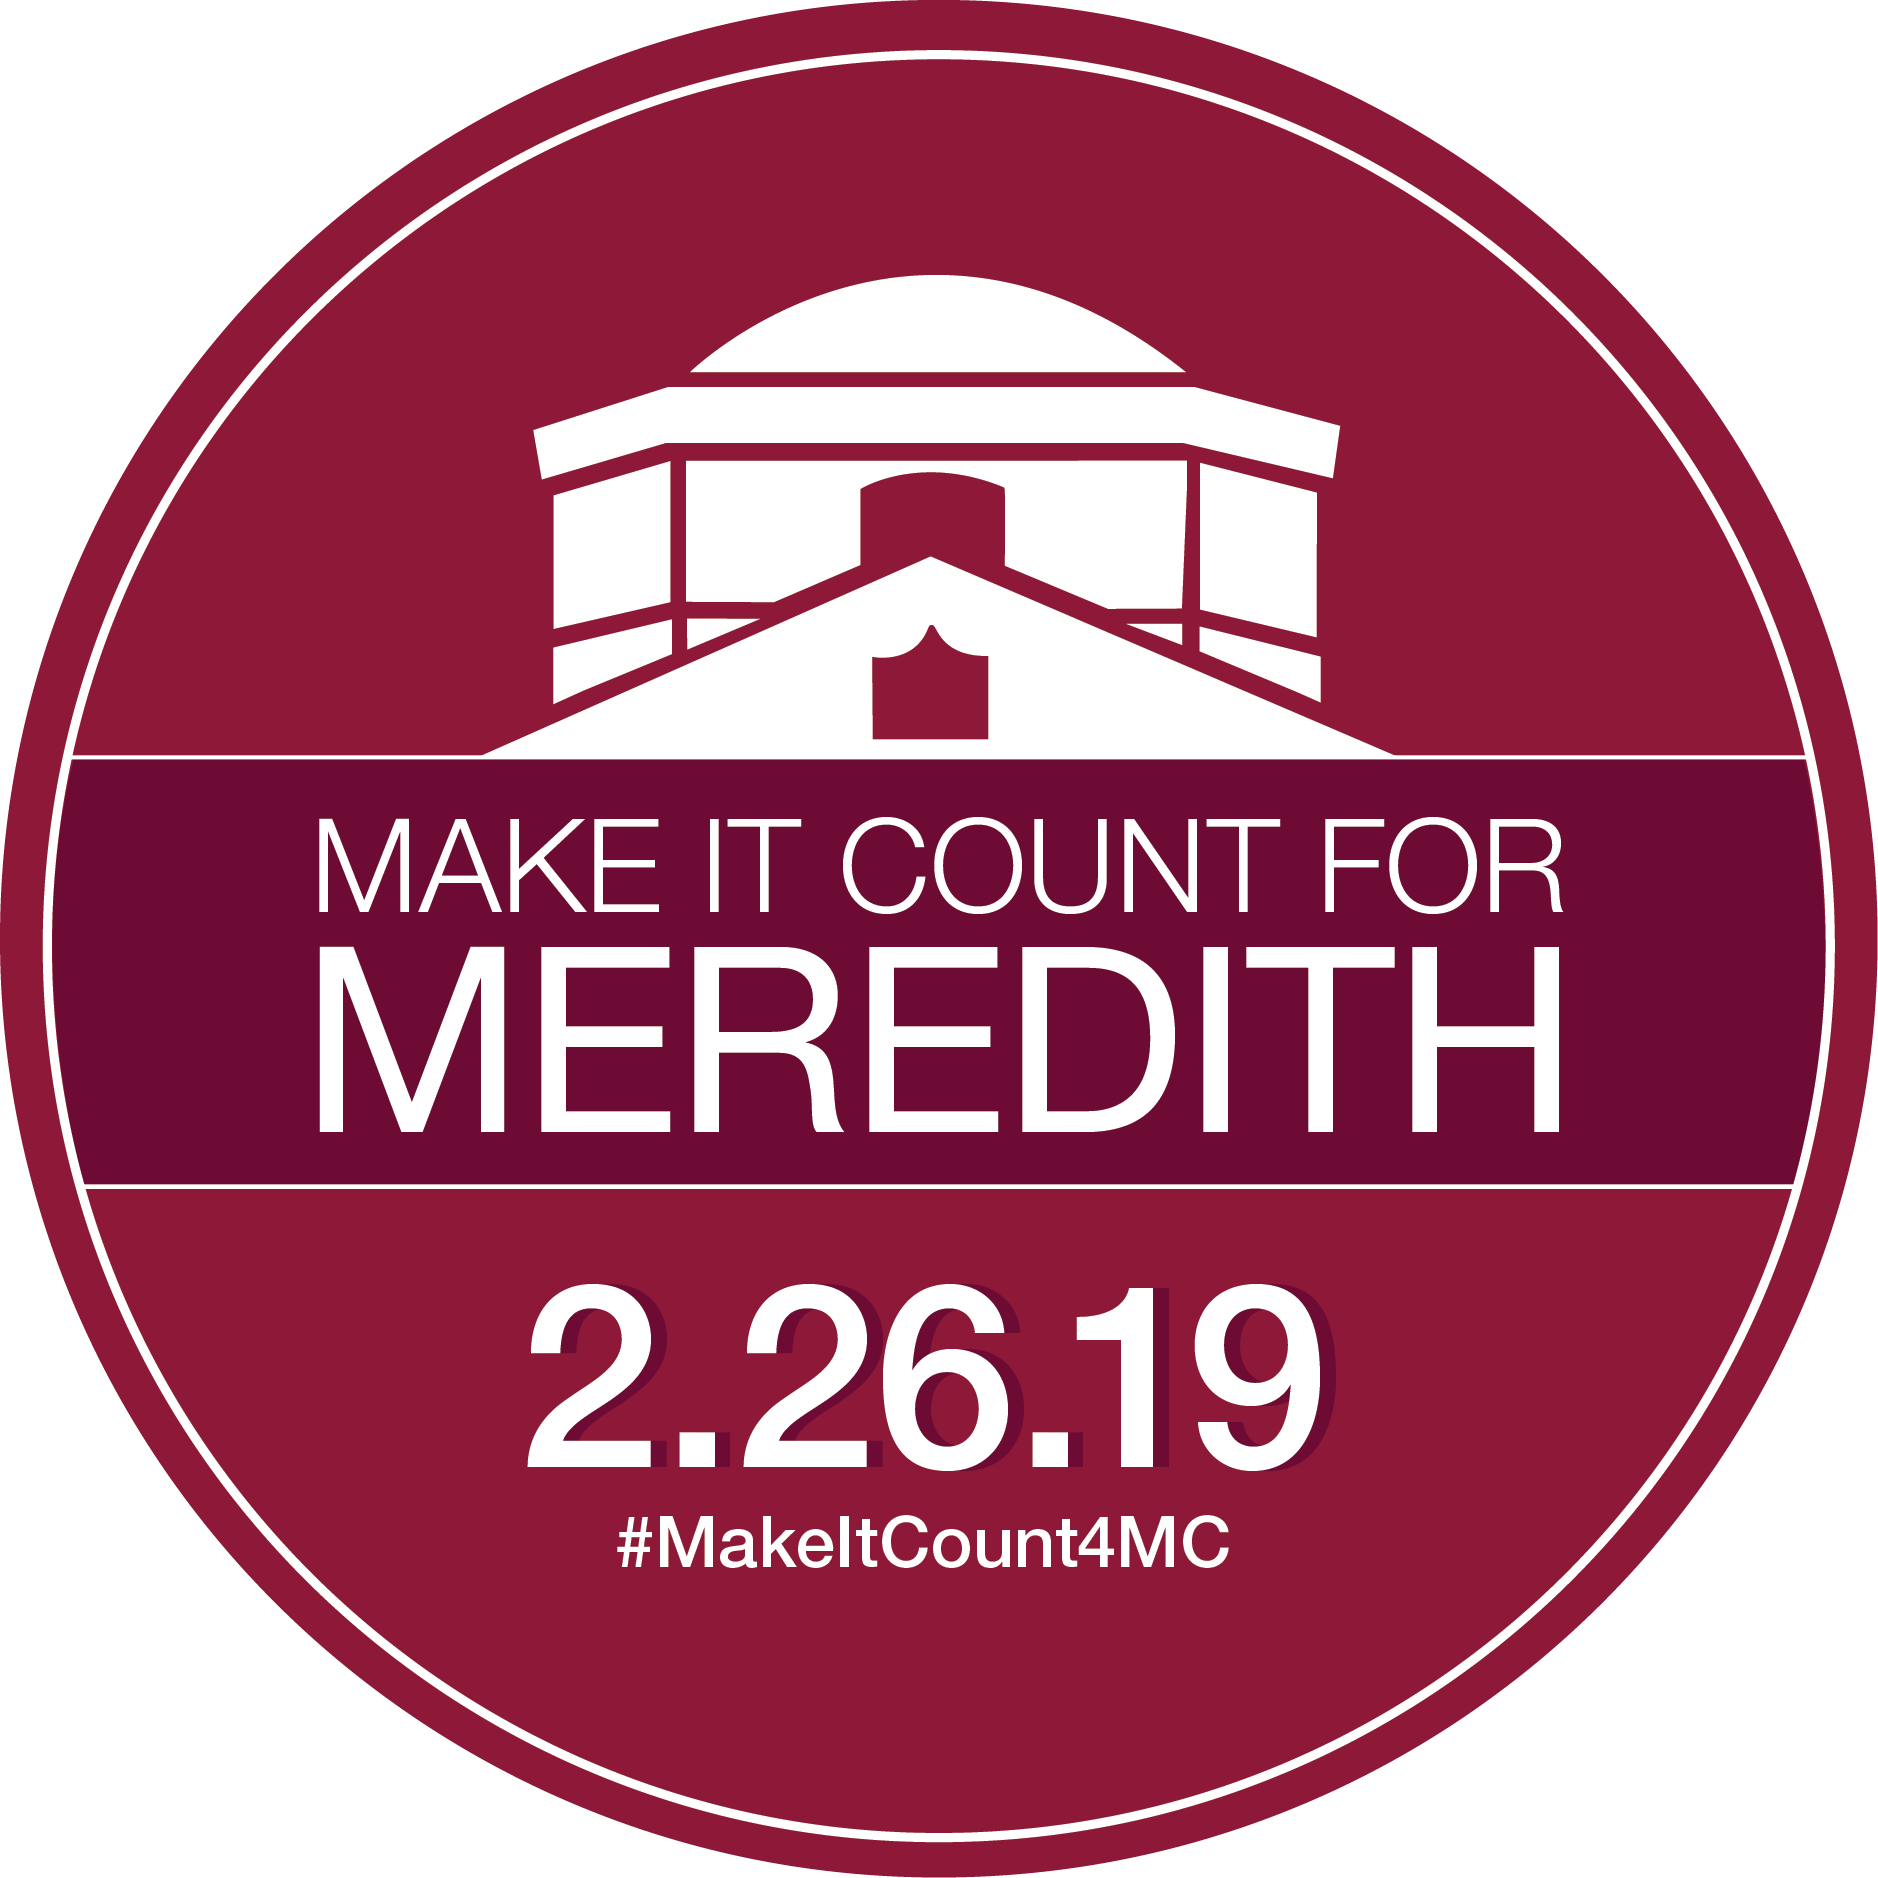 Make it count for Meredith February 26 2019